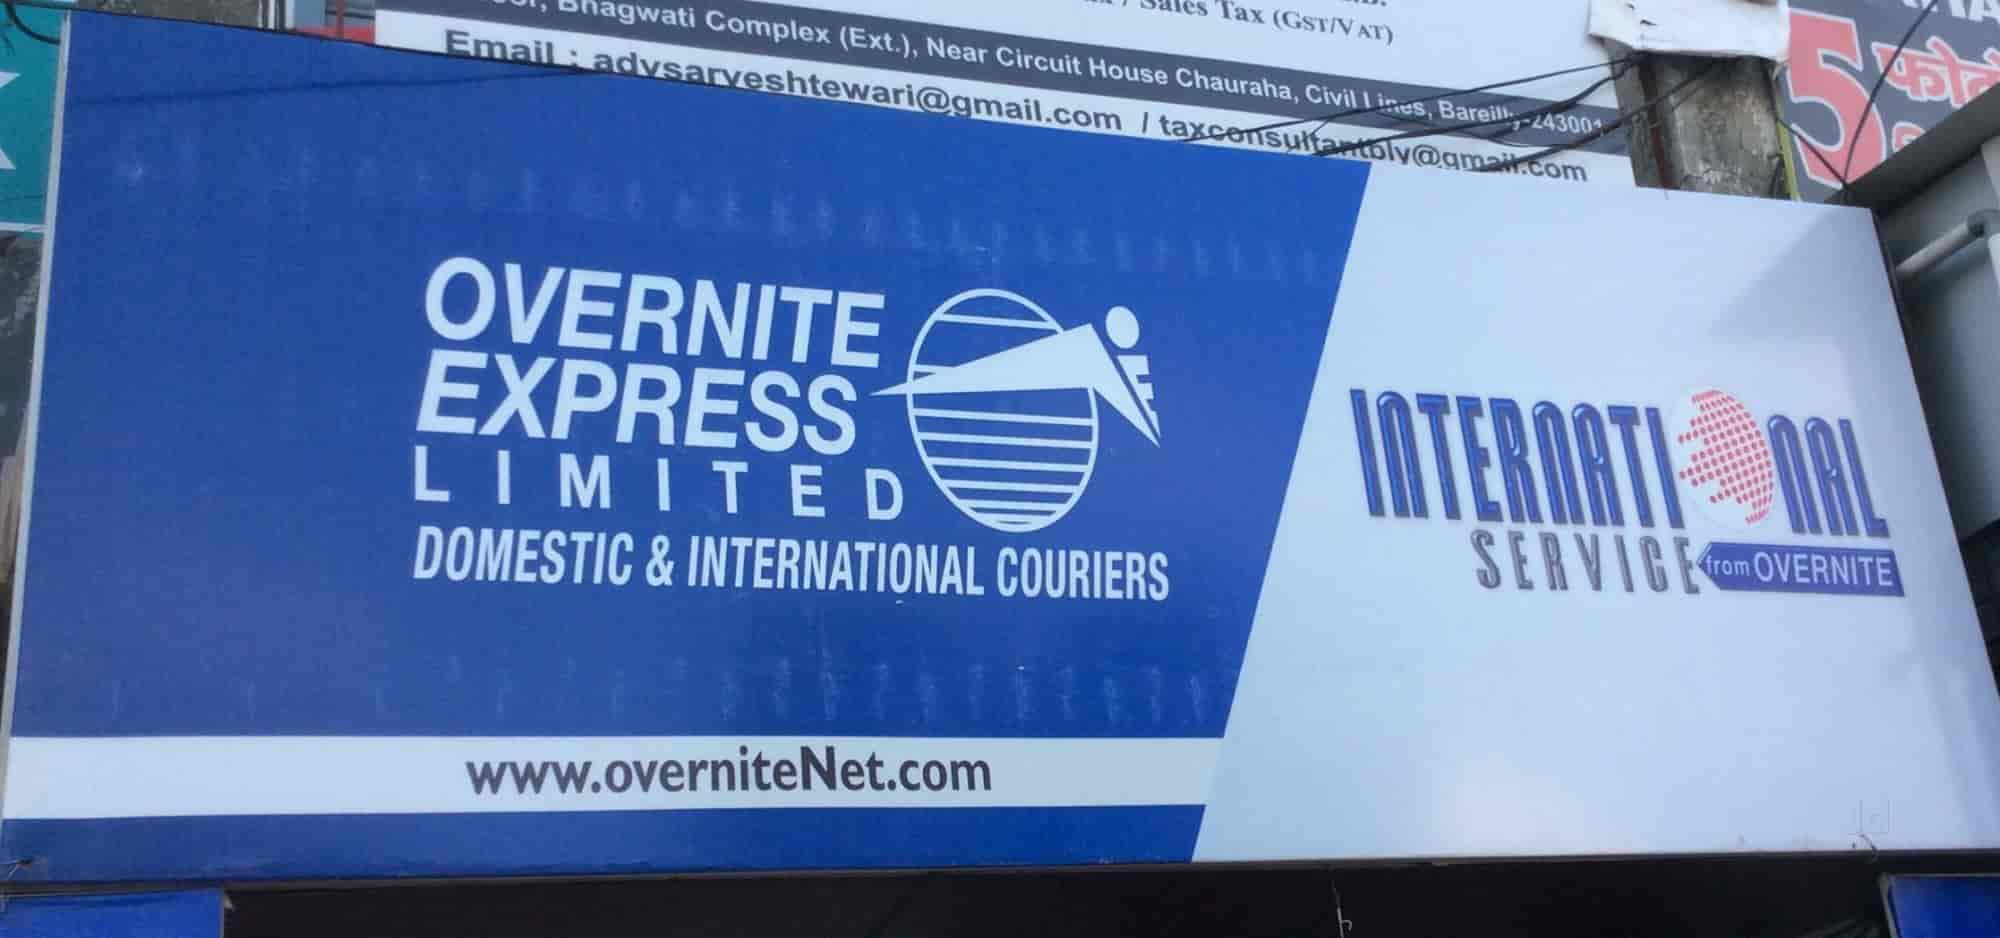 Overnite Express Courier Ltd, Civil Lines - Courier Services in